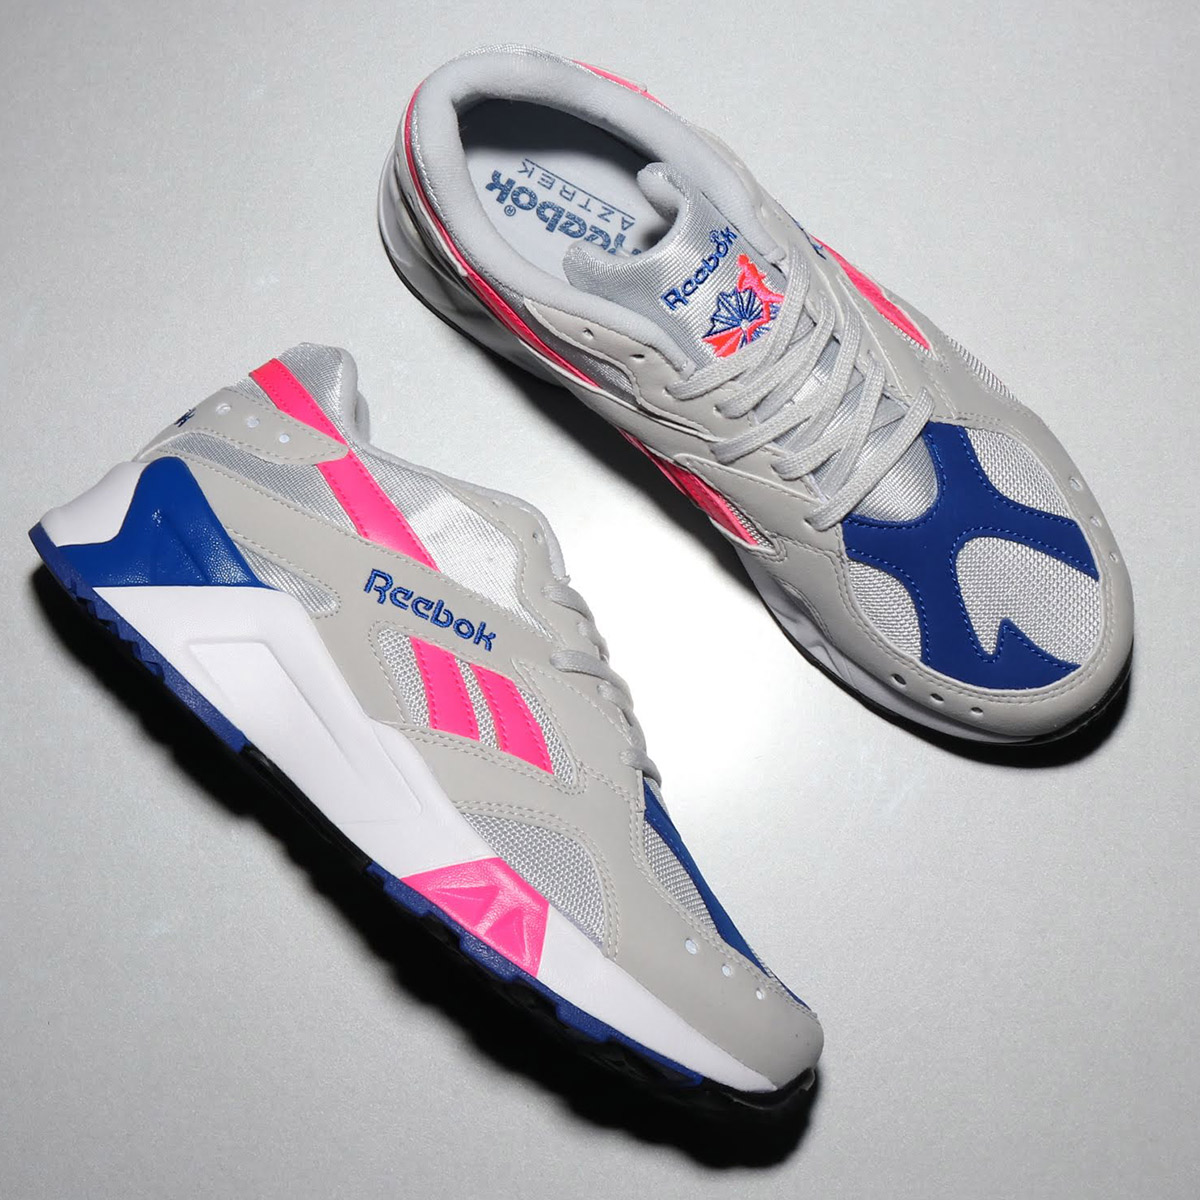 Reebok AZTREK (リーボック アズトレック) (SKULL GRAY/ACID PINK/COLLEGE ROYAL/WHITE/BLACK)18FW-S